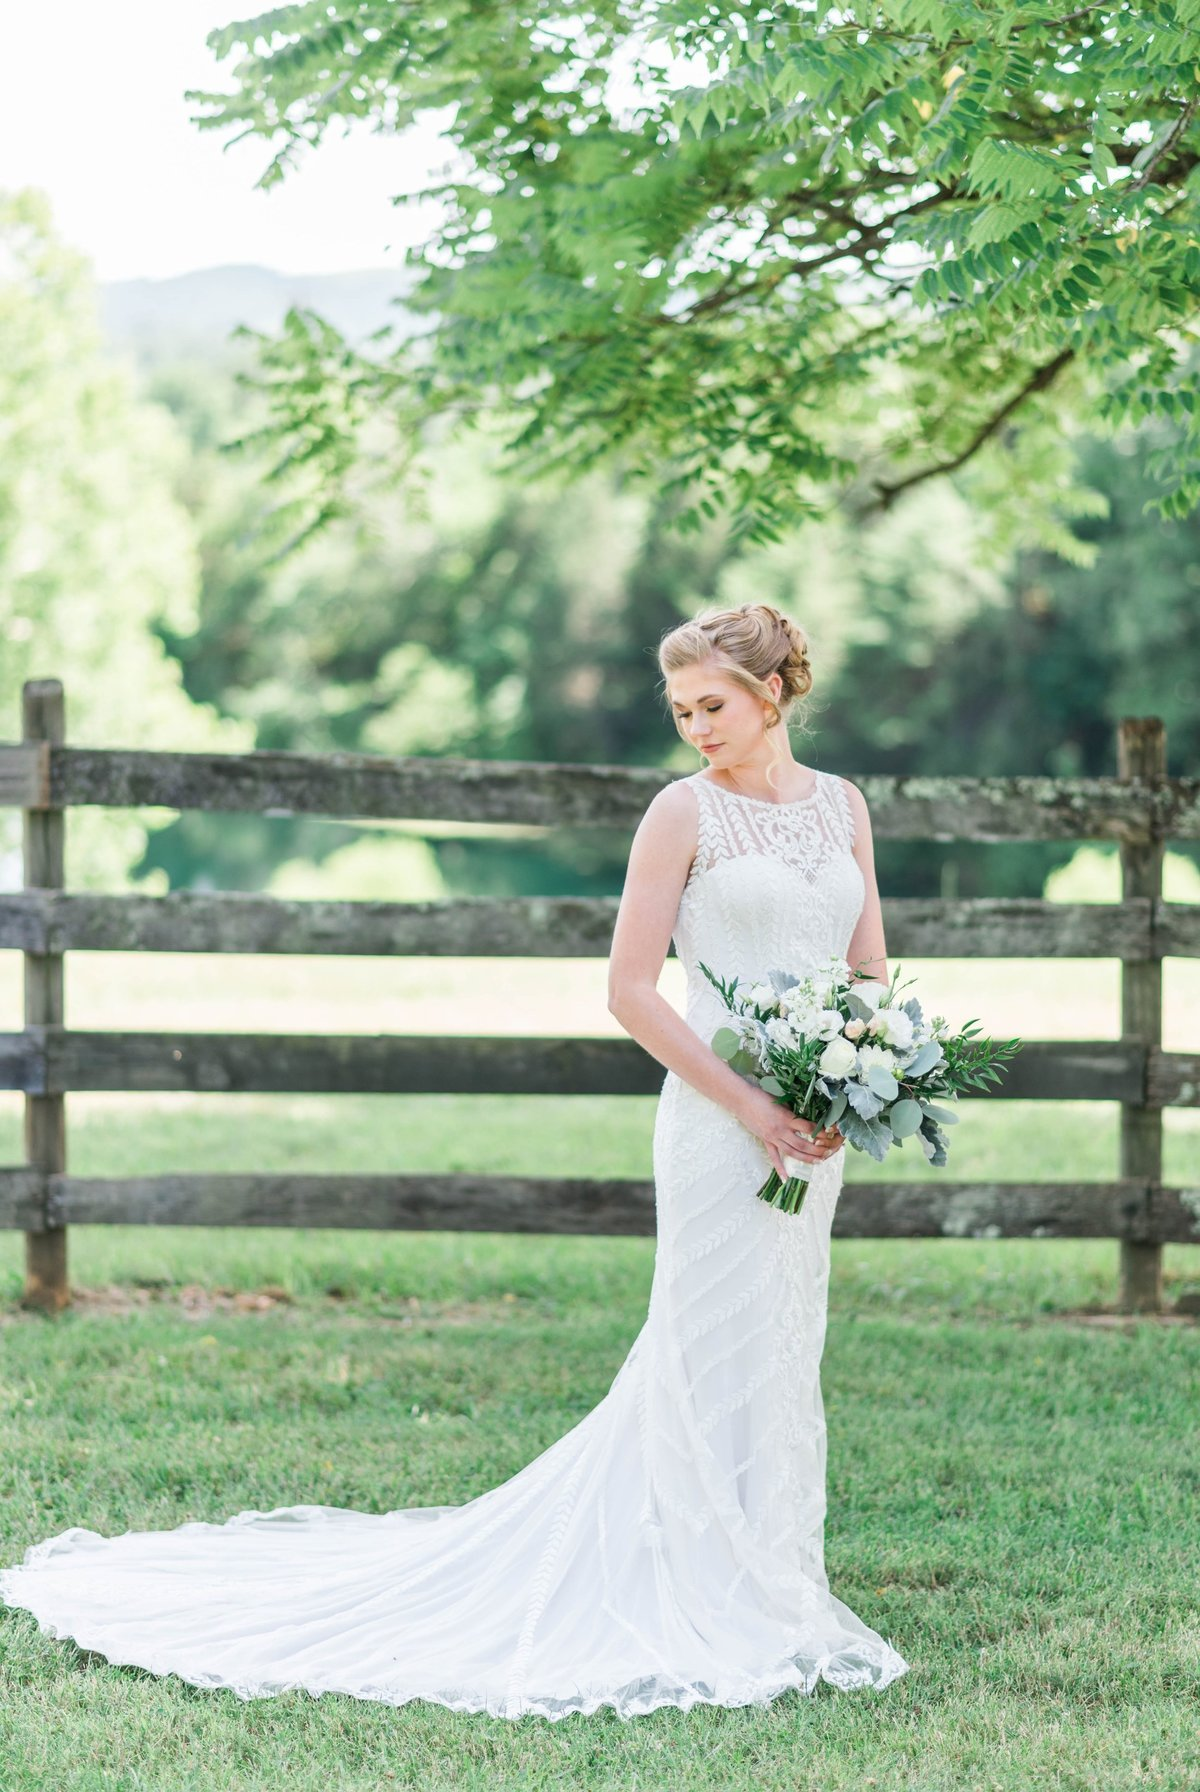 SorellaFarms_VirginiaWeddingPhotographer_BarnWedding_Lynchburgweddingphotographer_DanielleTyler+39